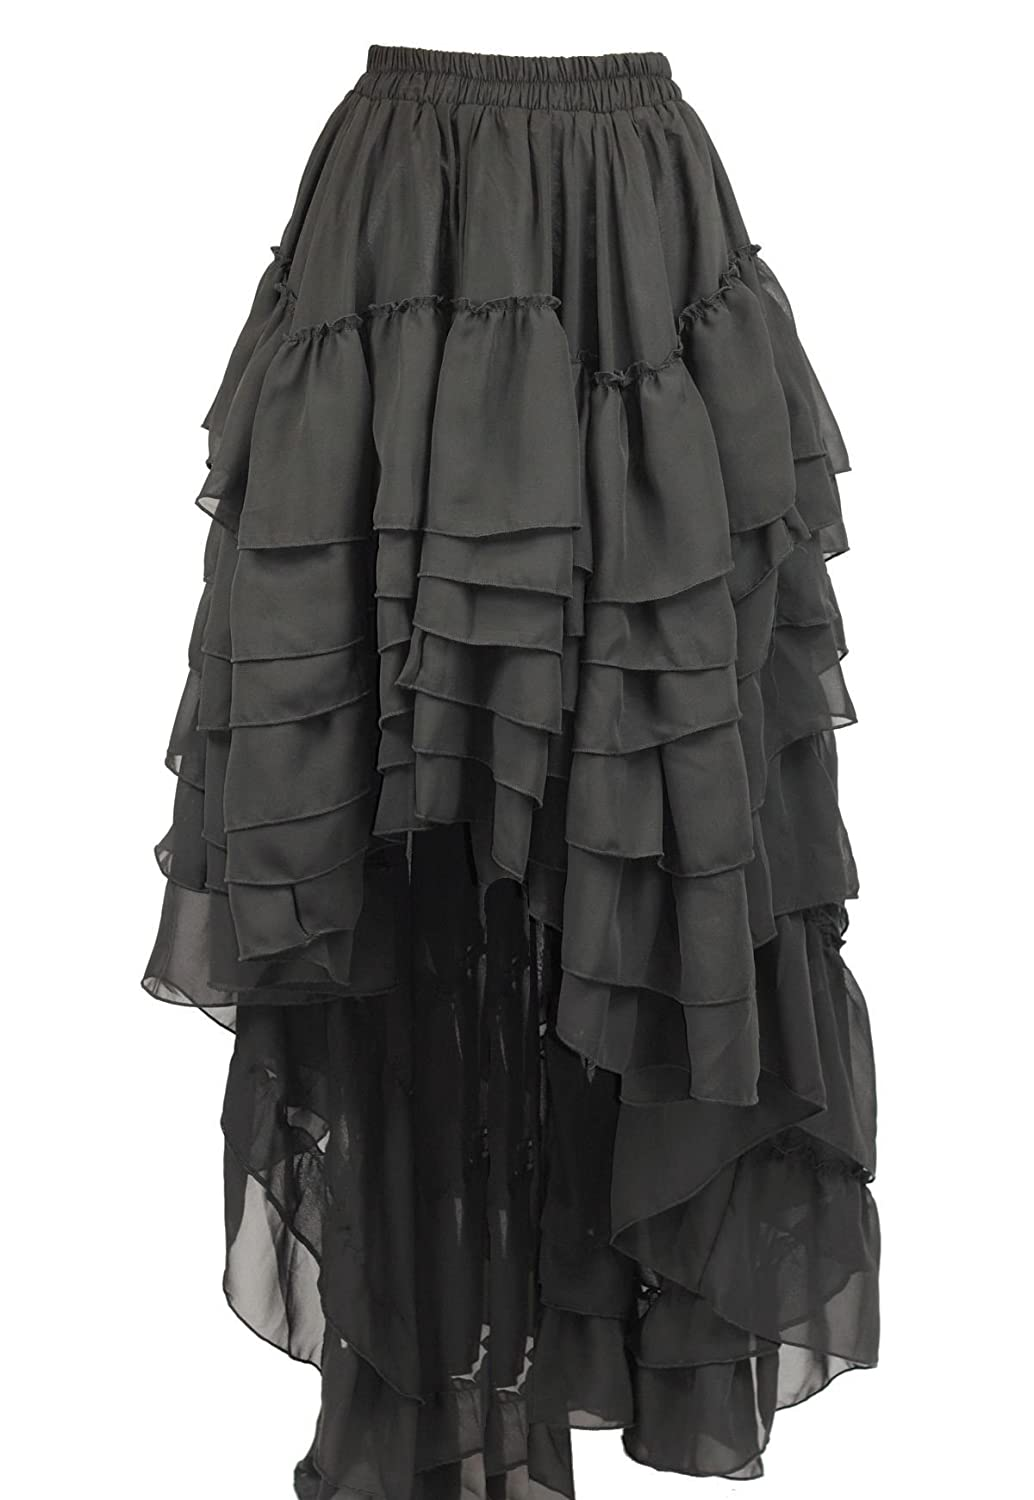 Steampunk Plus Size Clothing & Costumes  Amelia Steampunk Skirt $89.99 AT vintagedancer.com